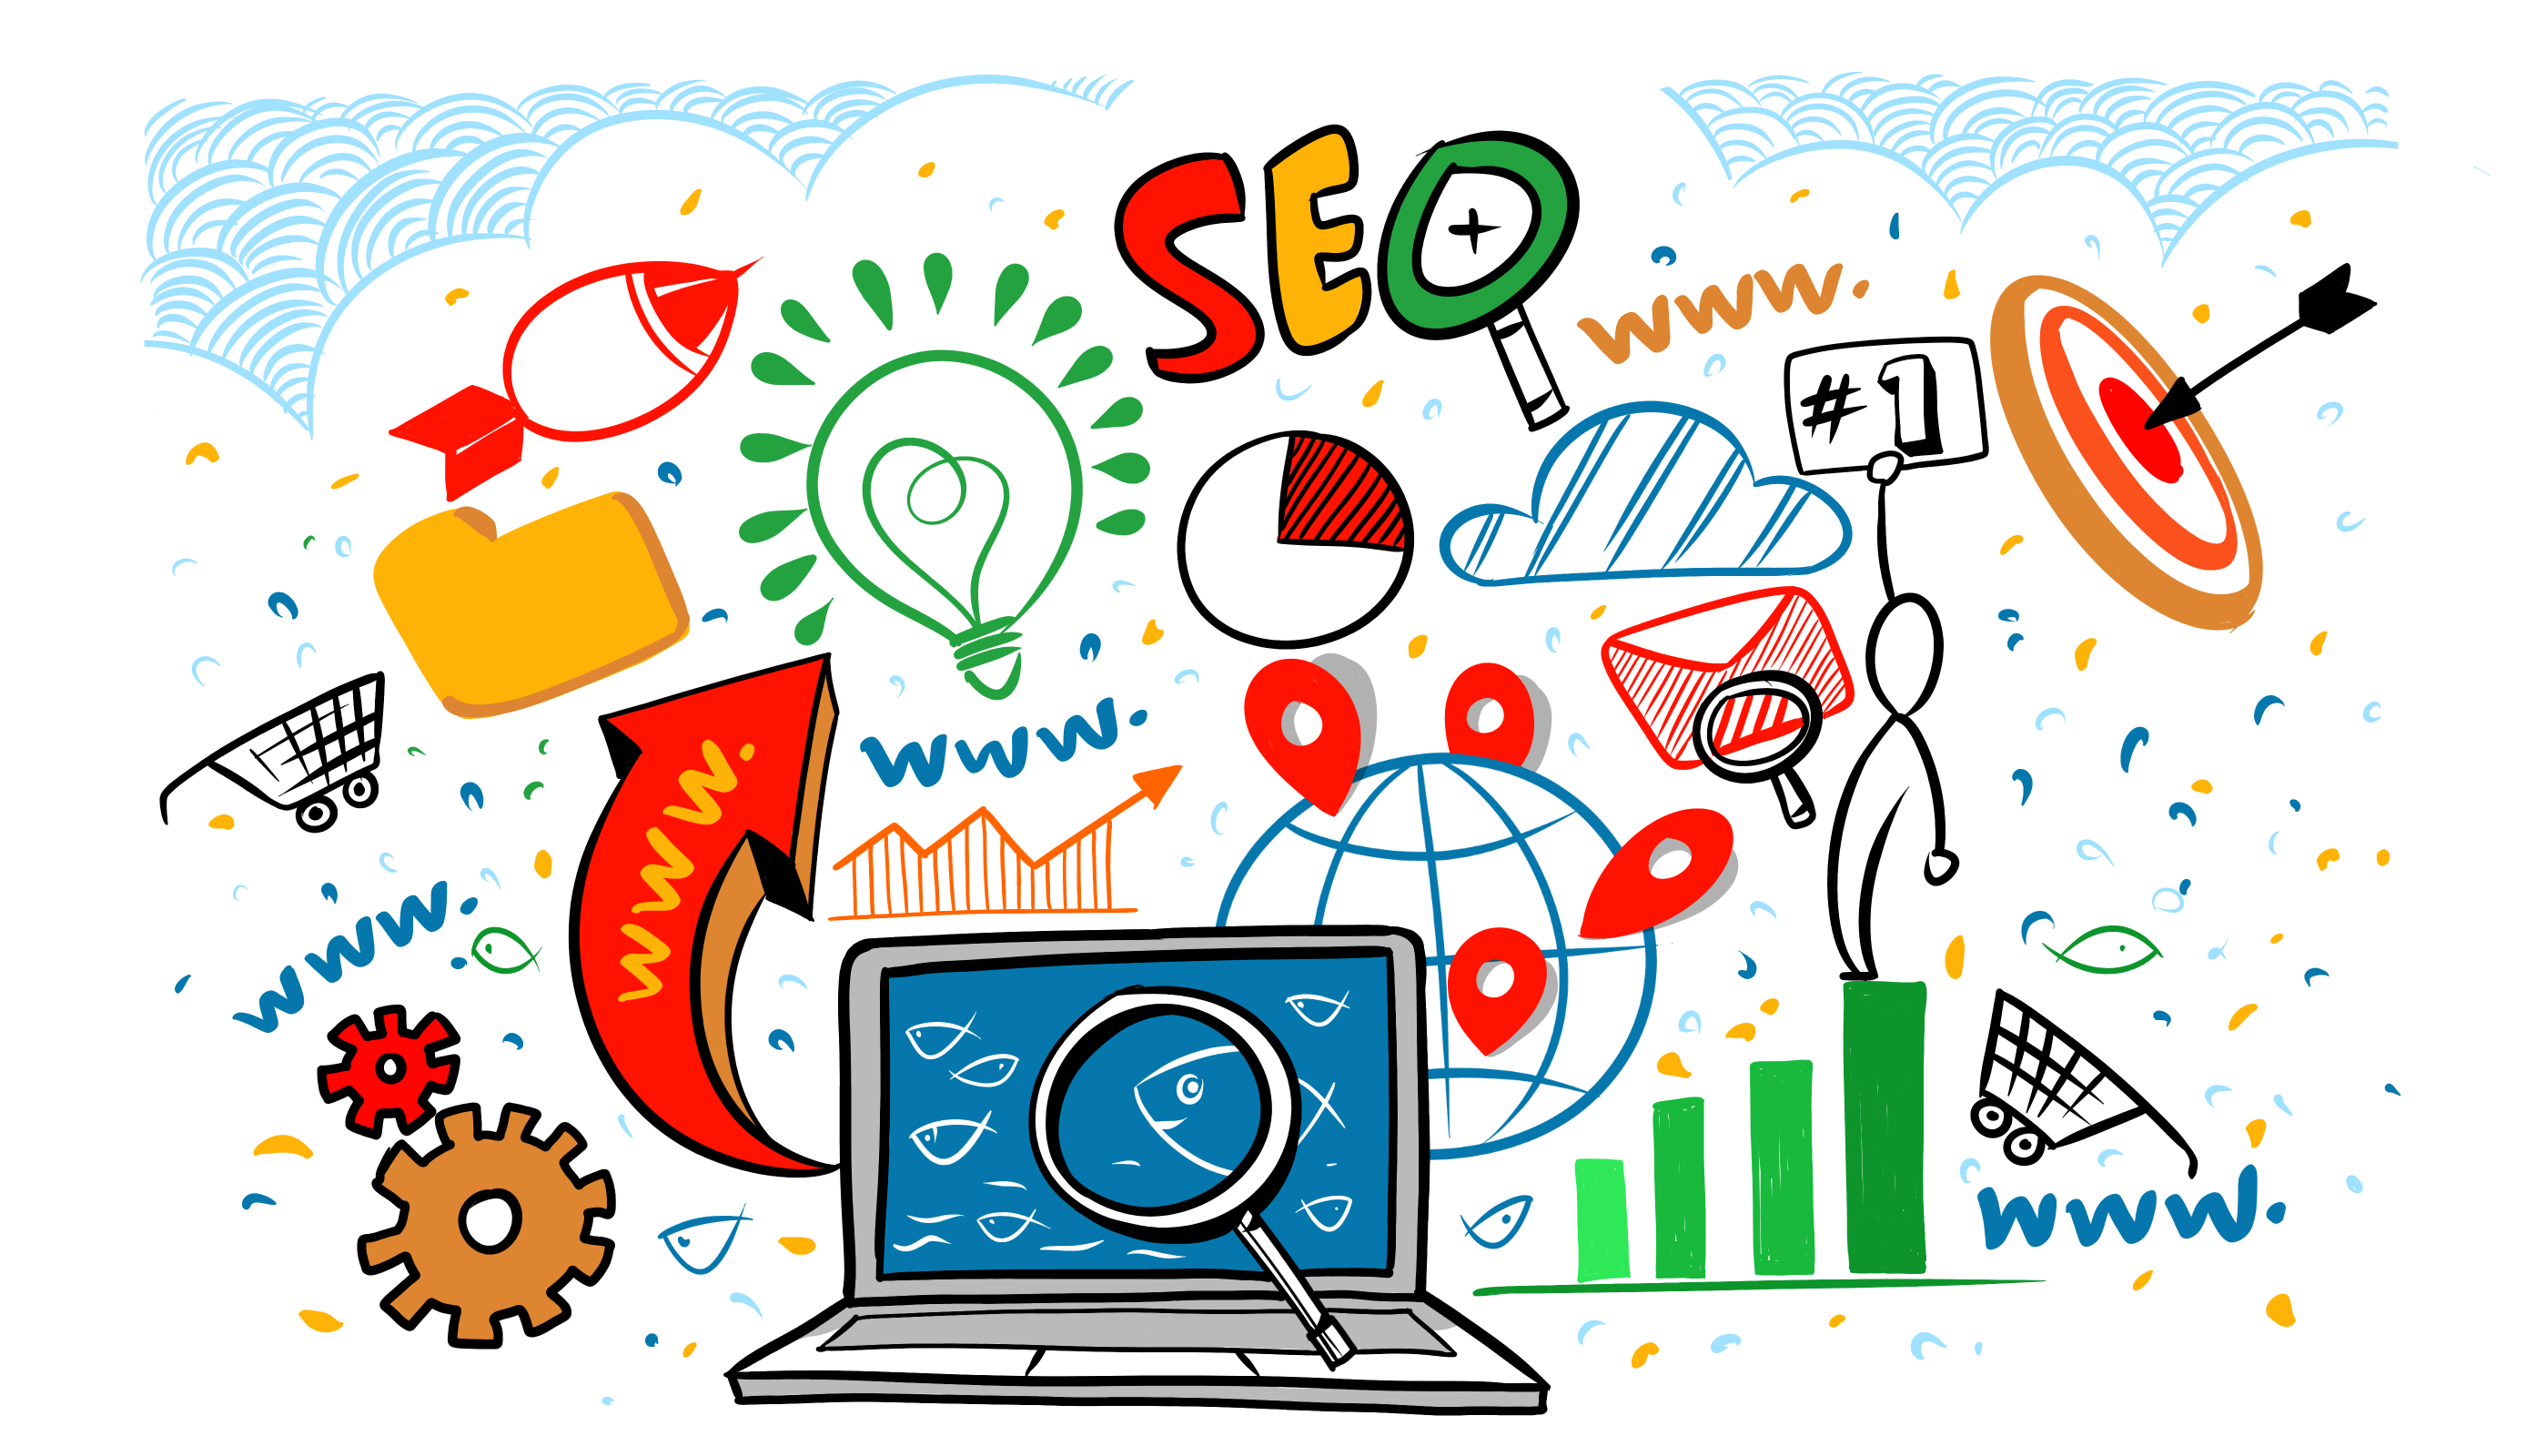 Top SEO Experts You Should Be Following | Top SEO Market Leaders